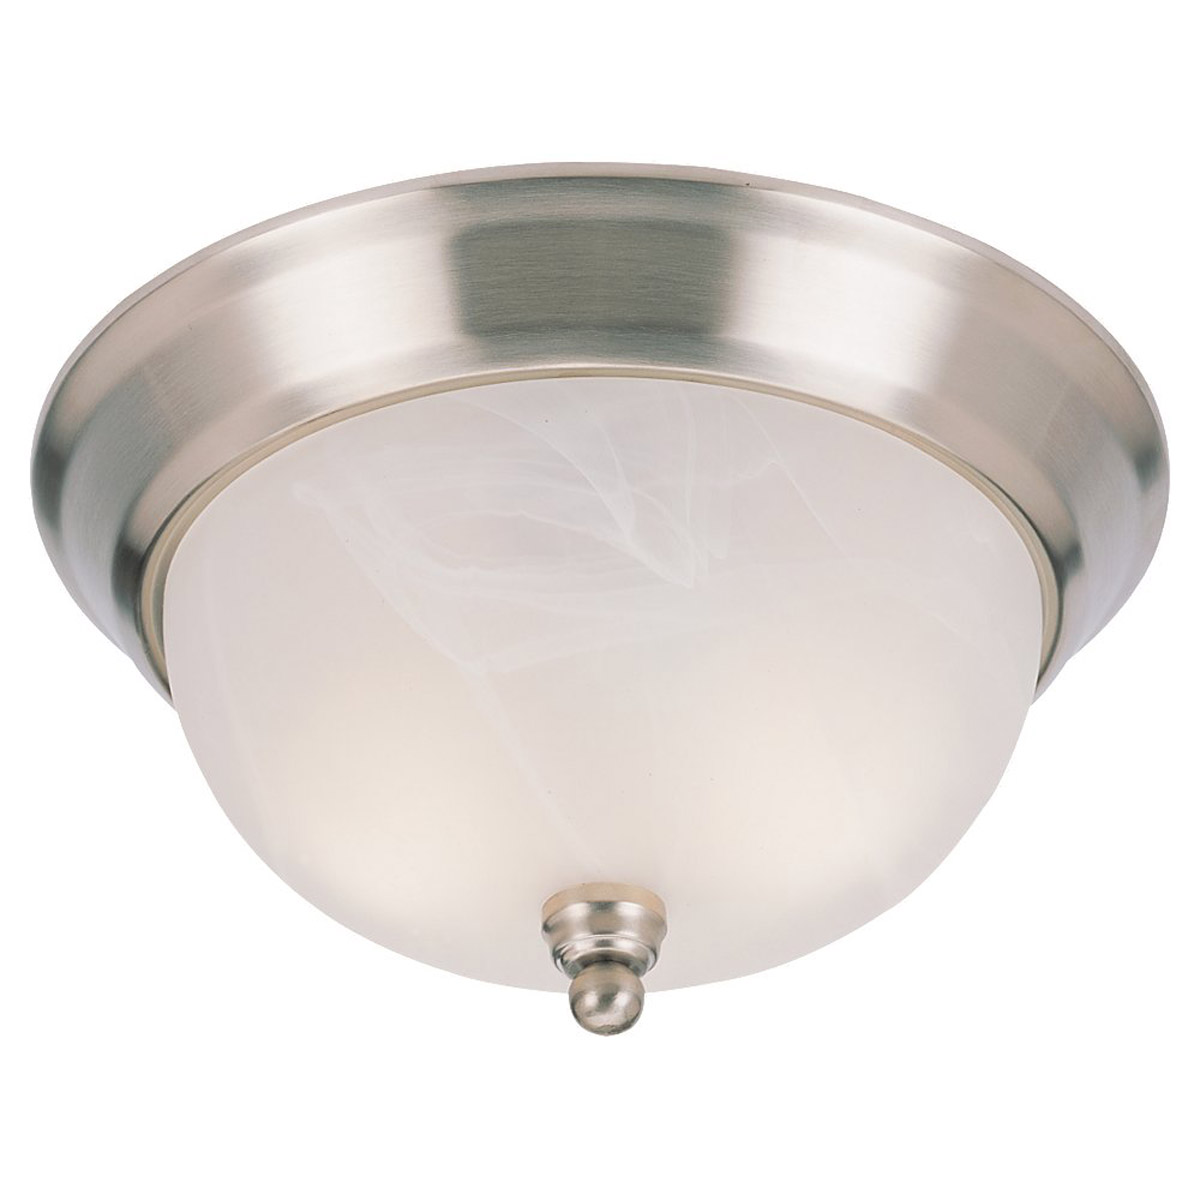 Sea Gull Lighting Landon 3 Light Fluorescent Flush Mount in Brushed Nickel 79242BLE-962 photo